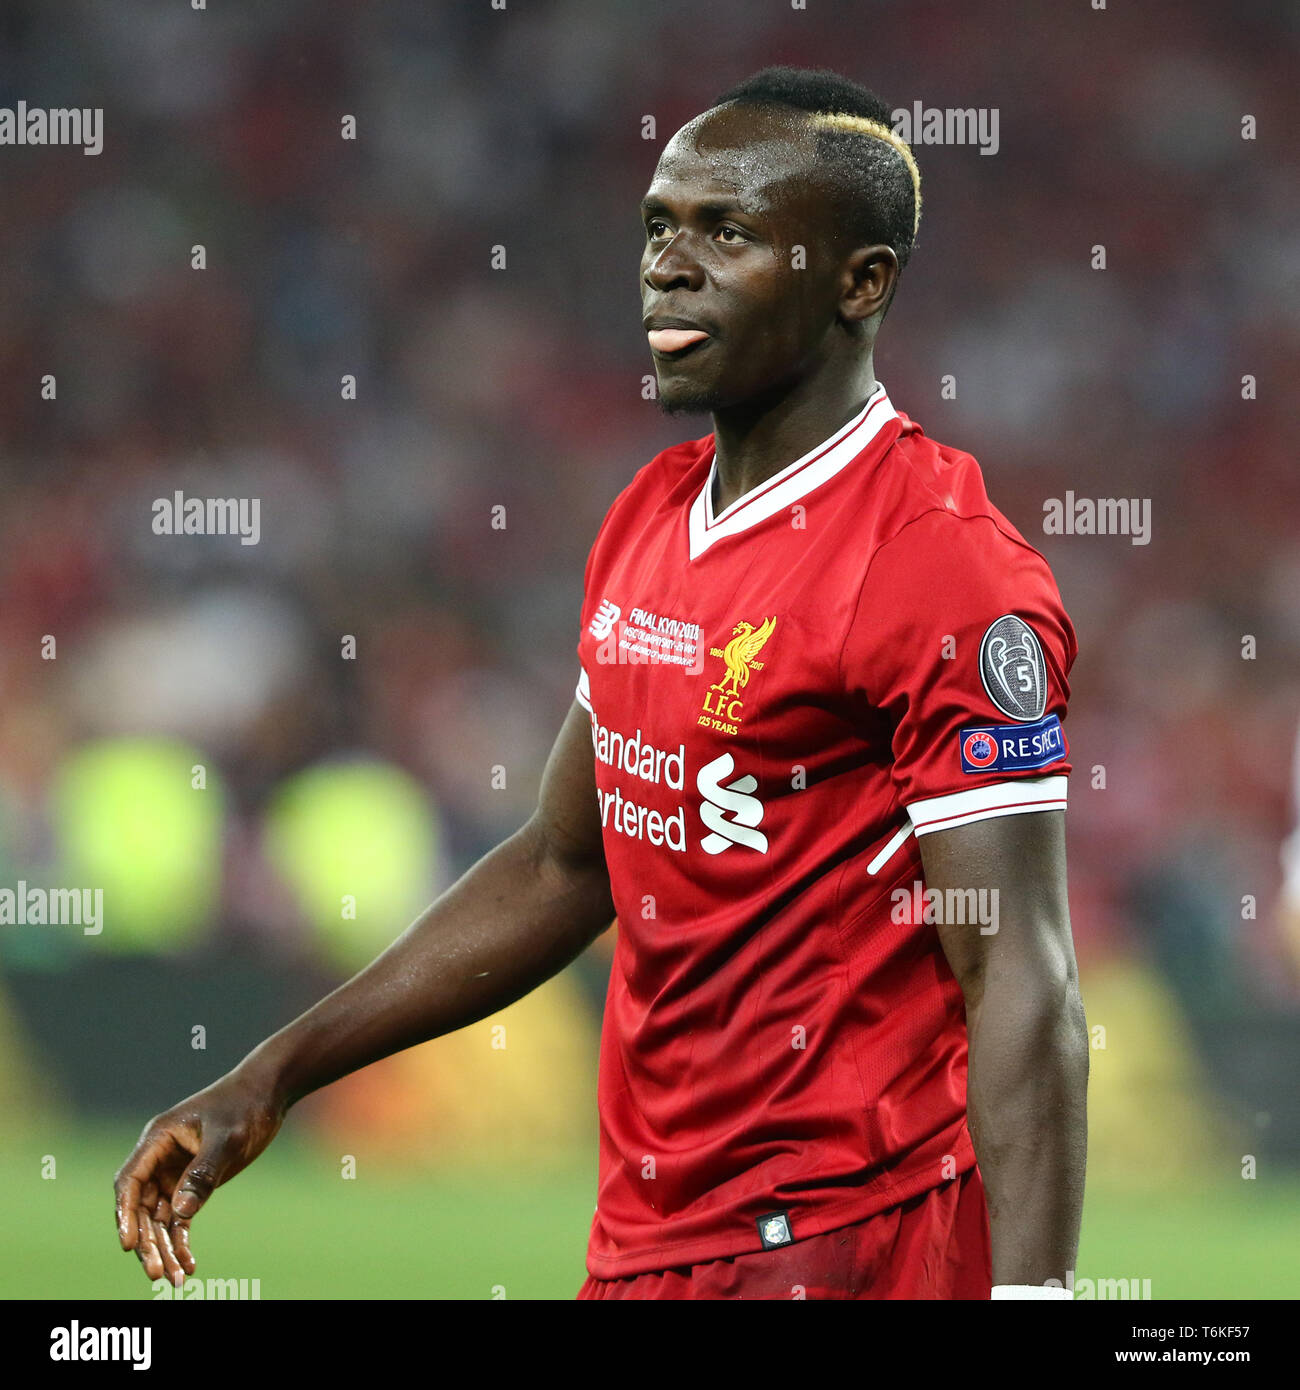 Liverpool Fc Beaten 3 0 By Real Madrid At Anfield: Sadio Mane Stock Photos & Sadio Mane Stock Images